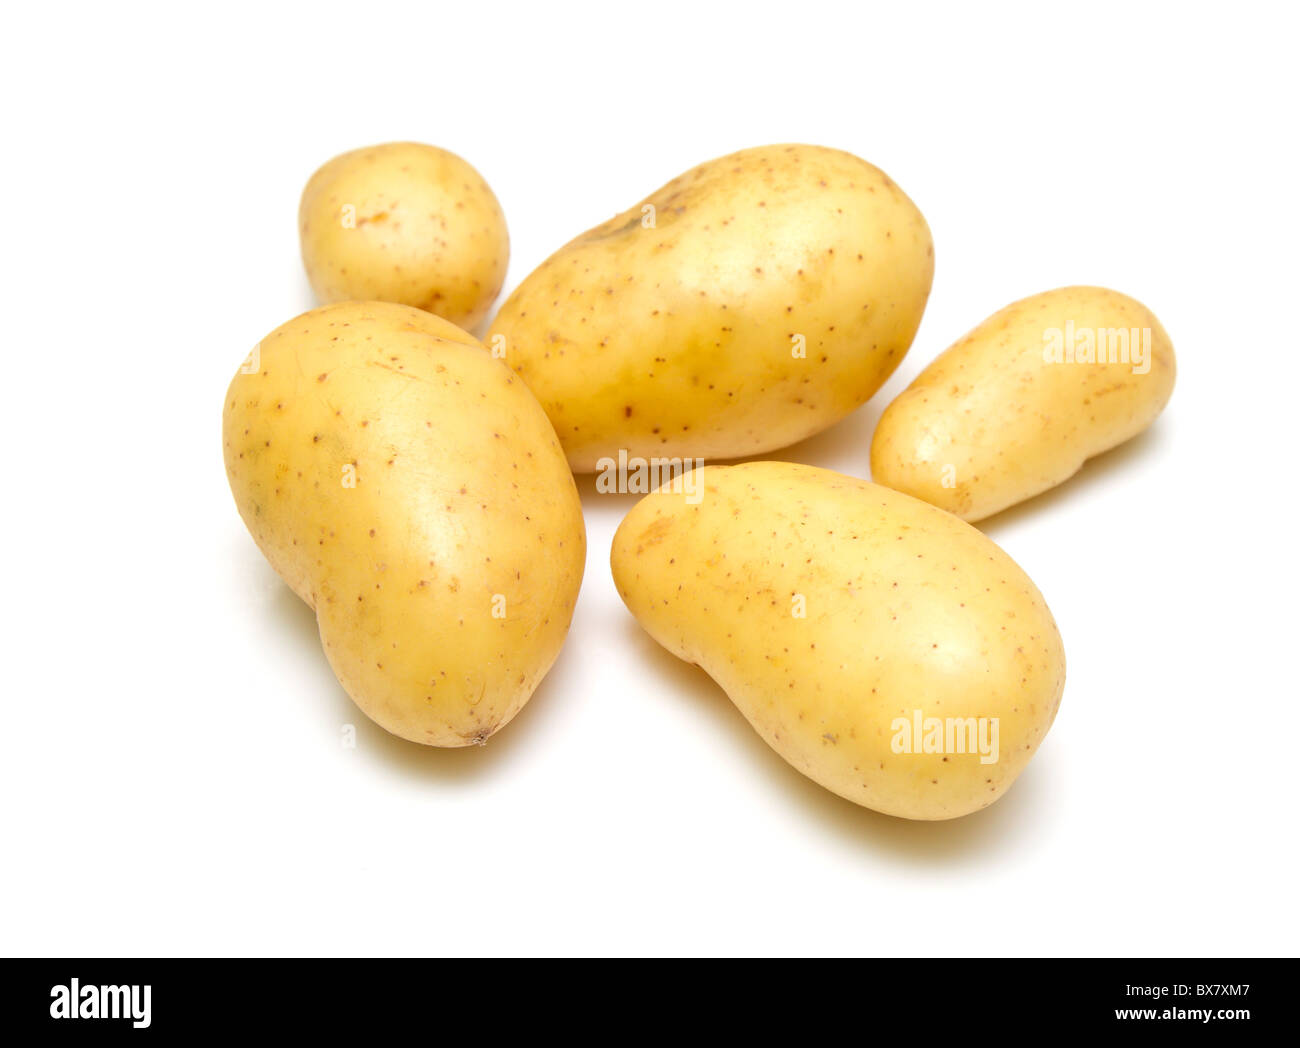 Fresh and clean new potatoes - Stock Image